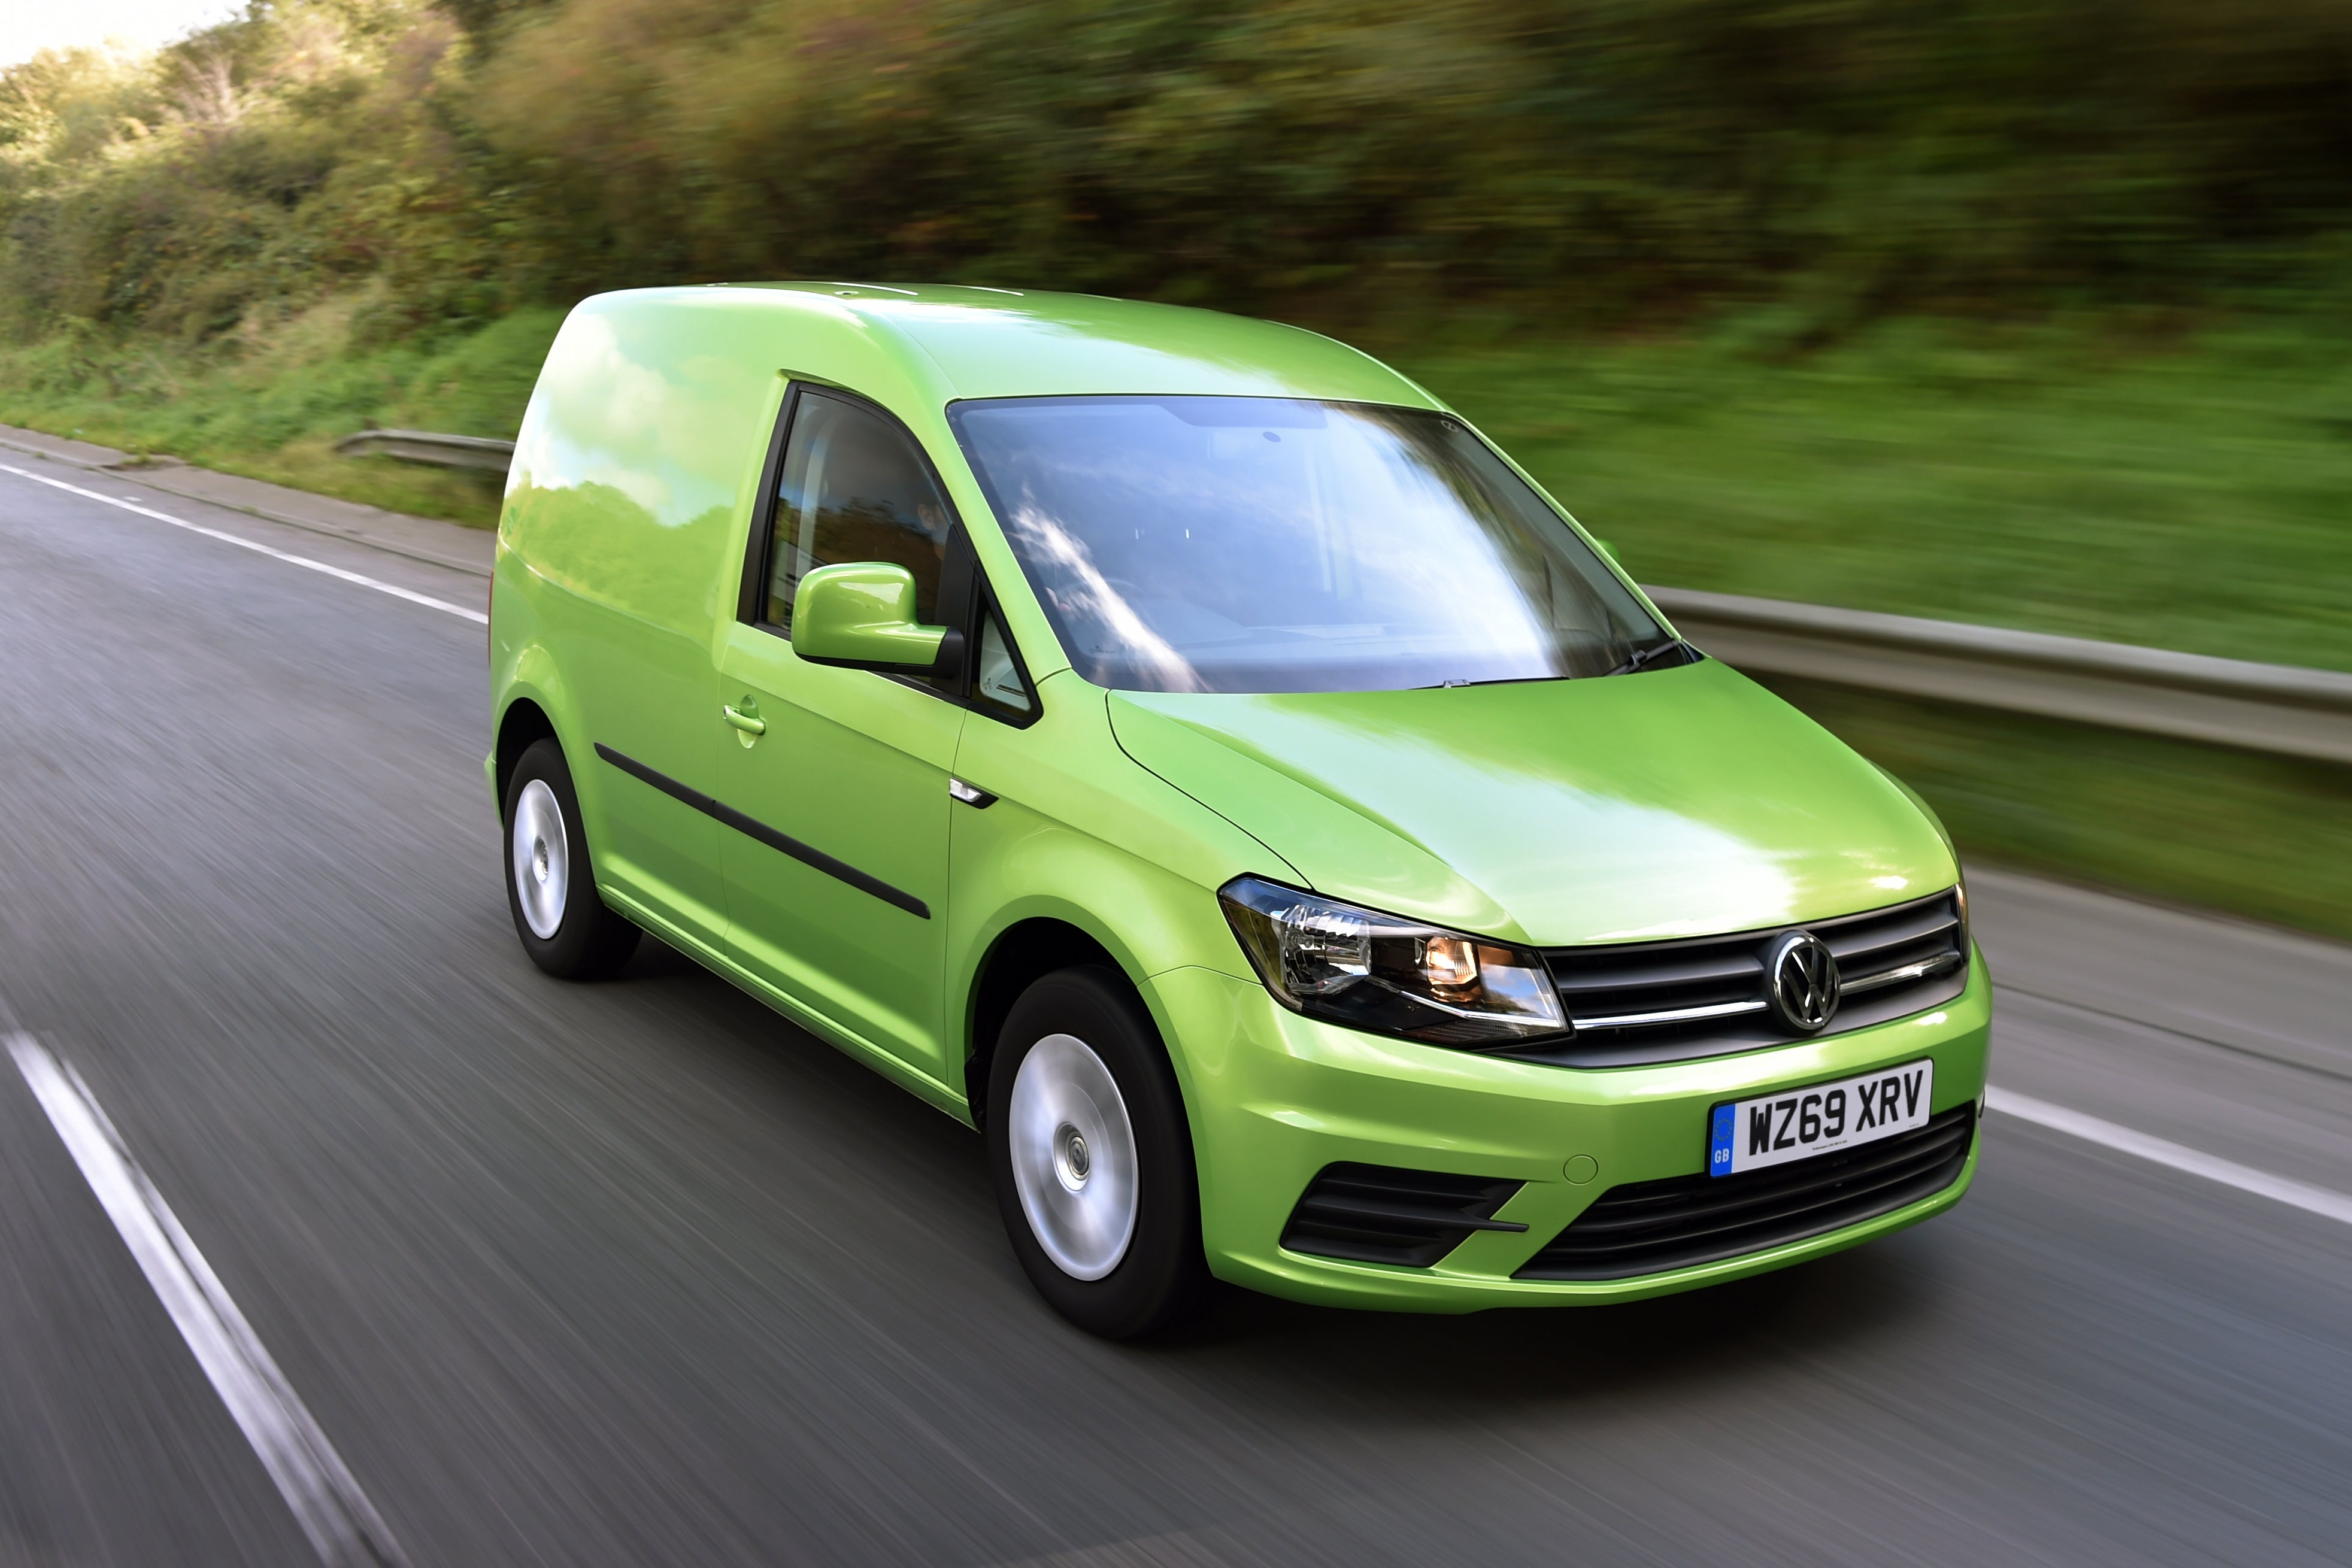 Volkswagen Caddy Front Side View